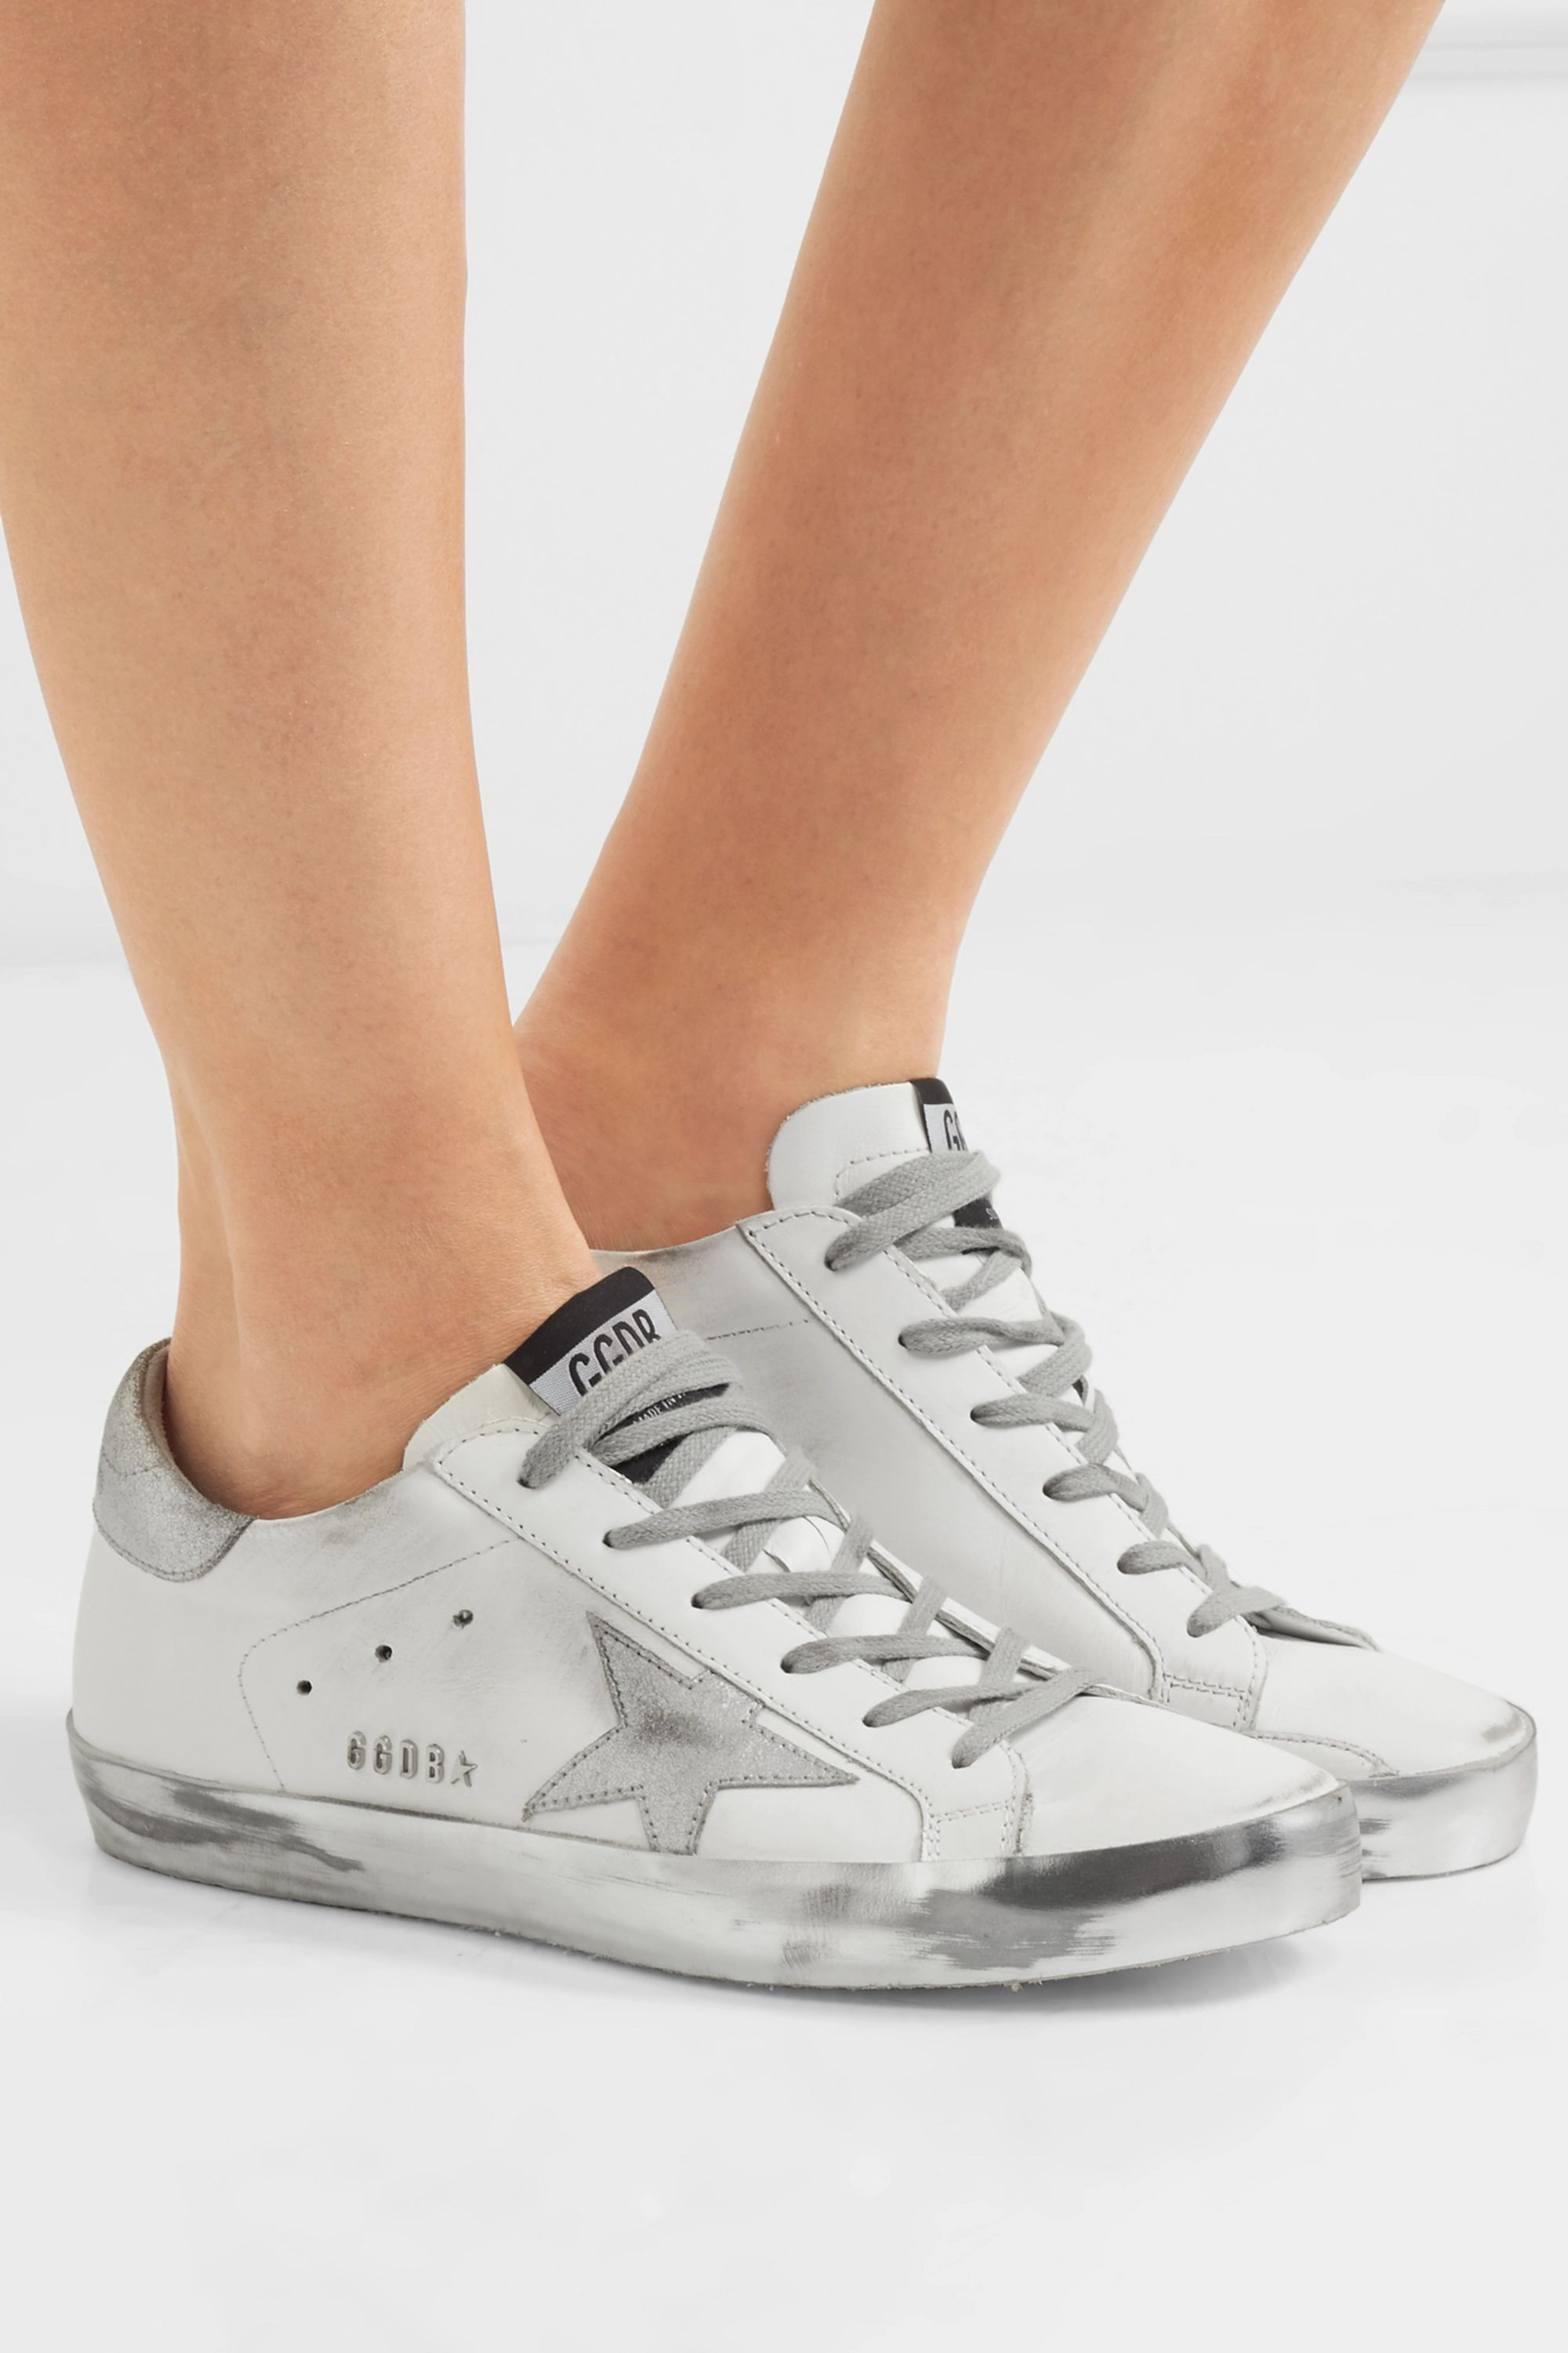 Golden Goose Superstar distressed leather sneakers